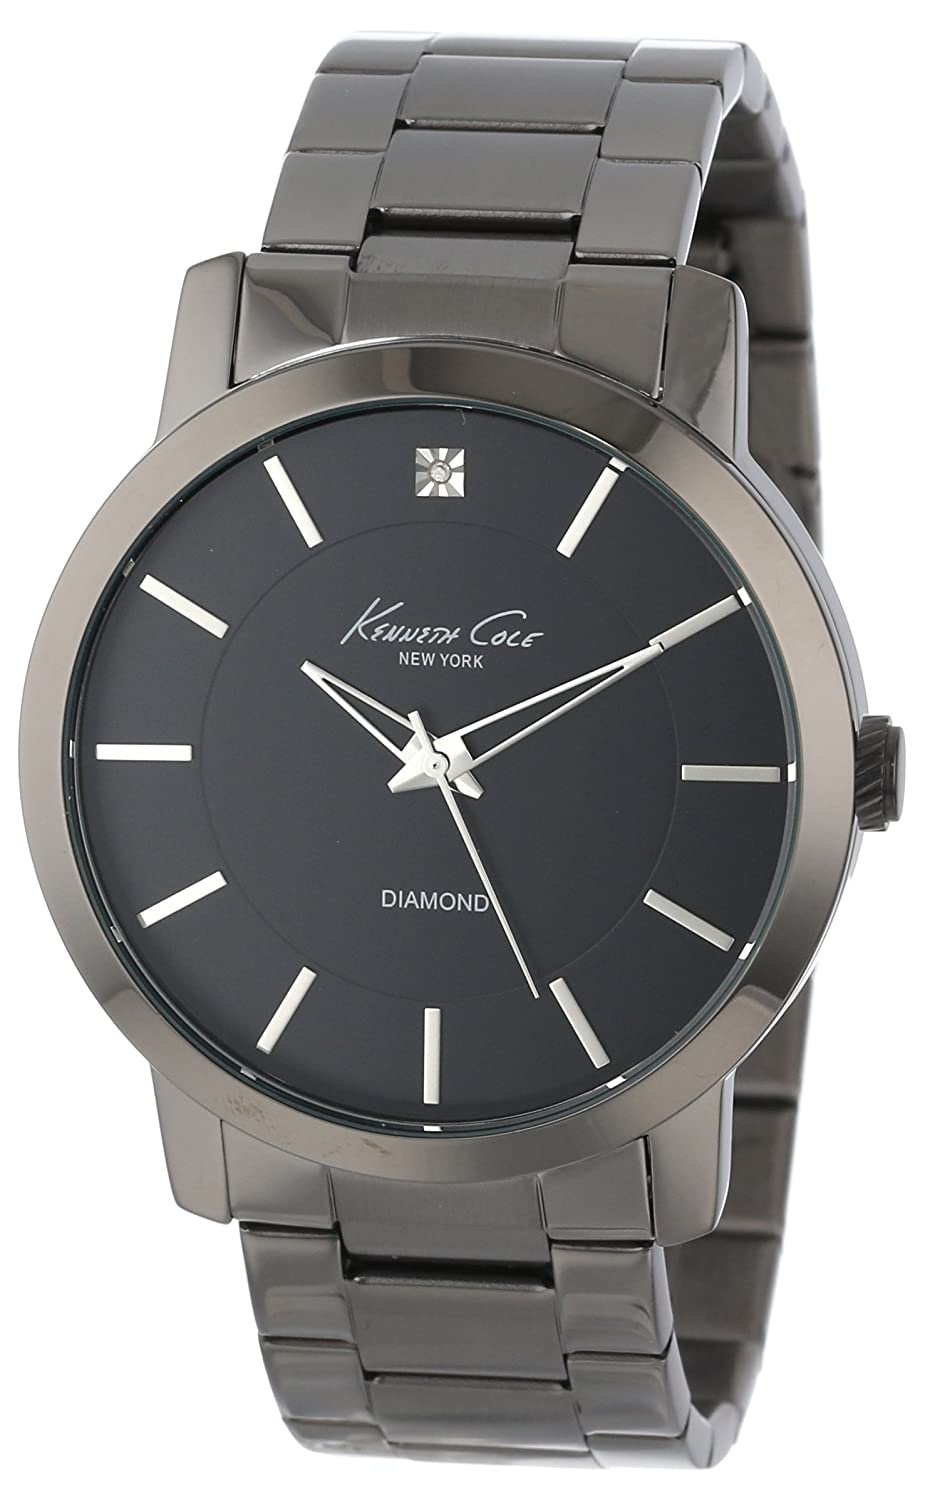 buy kenneth cole analog black dial men s watch ikc9286 online at buy kenneth cole analog black dial men s watch ikc9286 online at low prices in amazon in